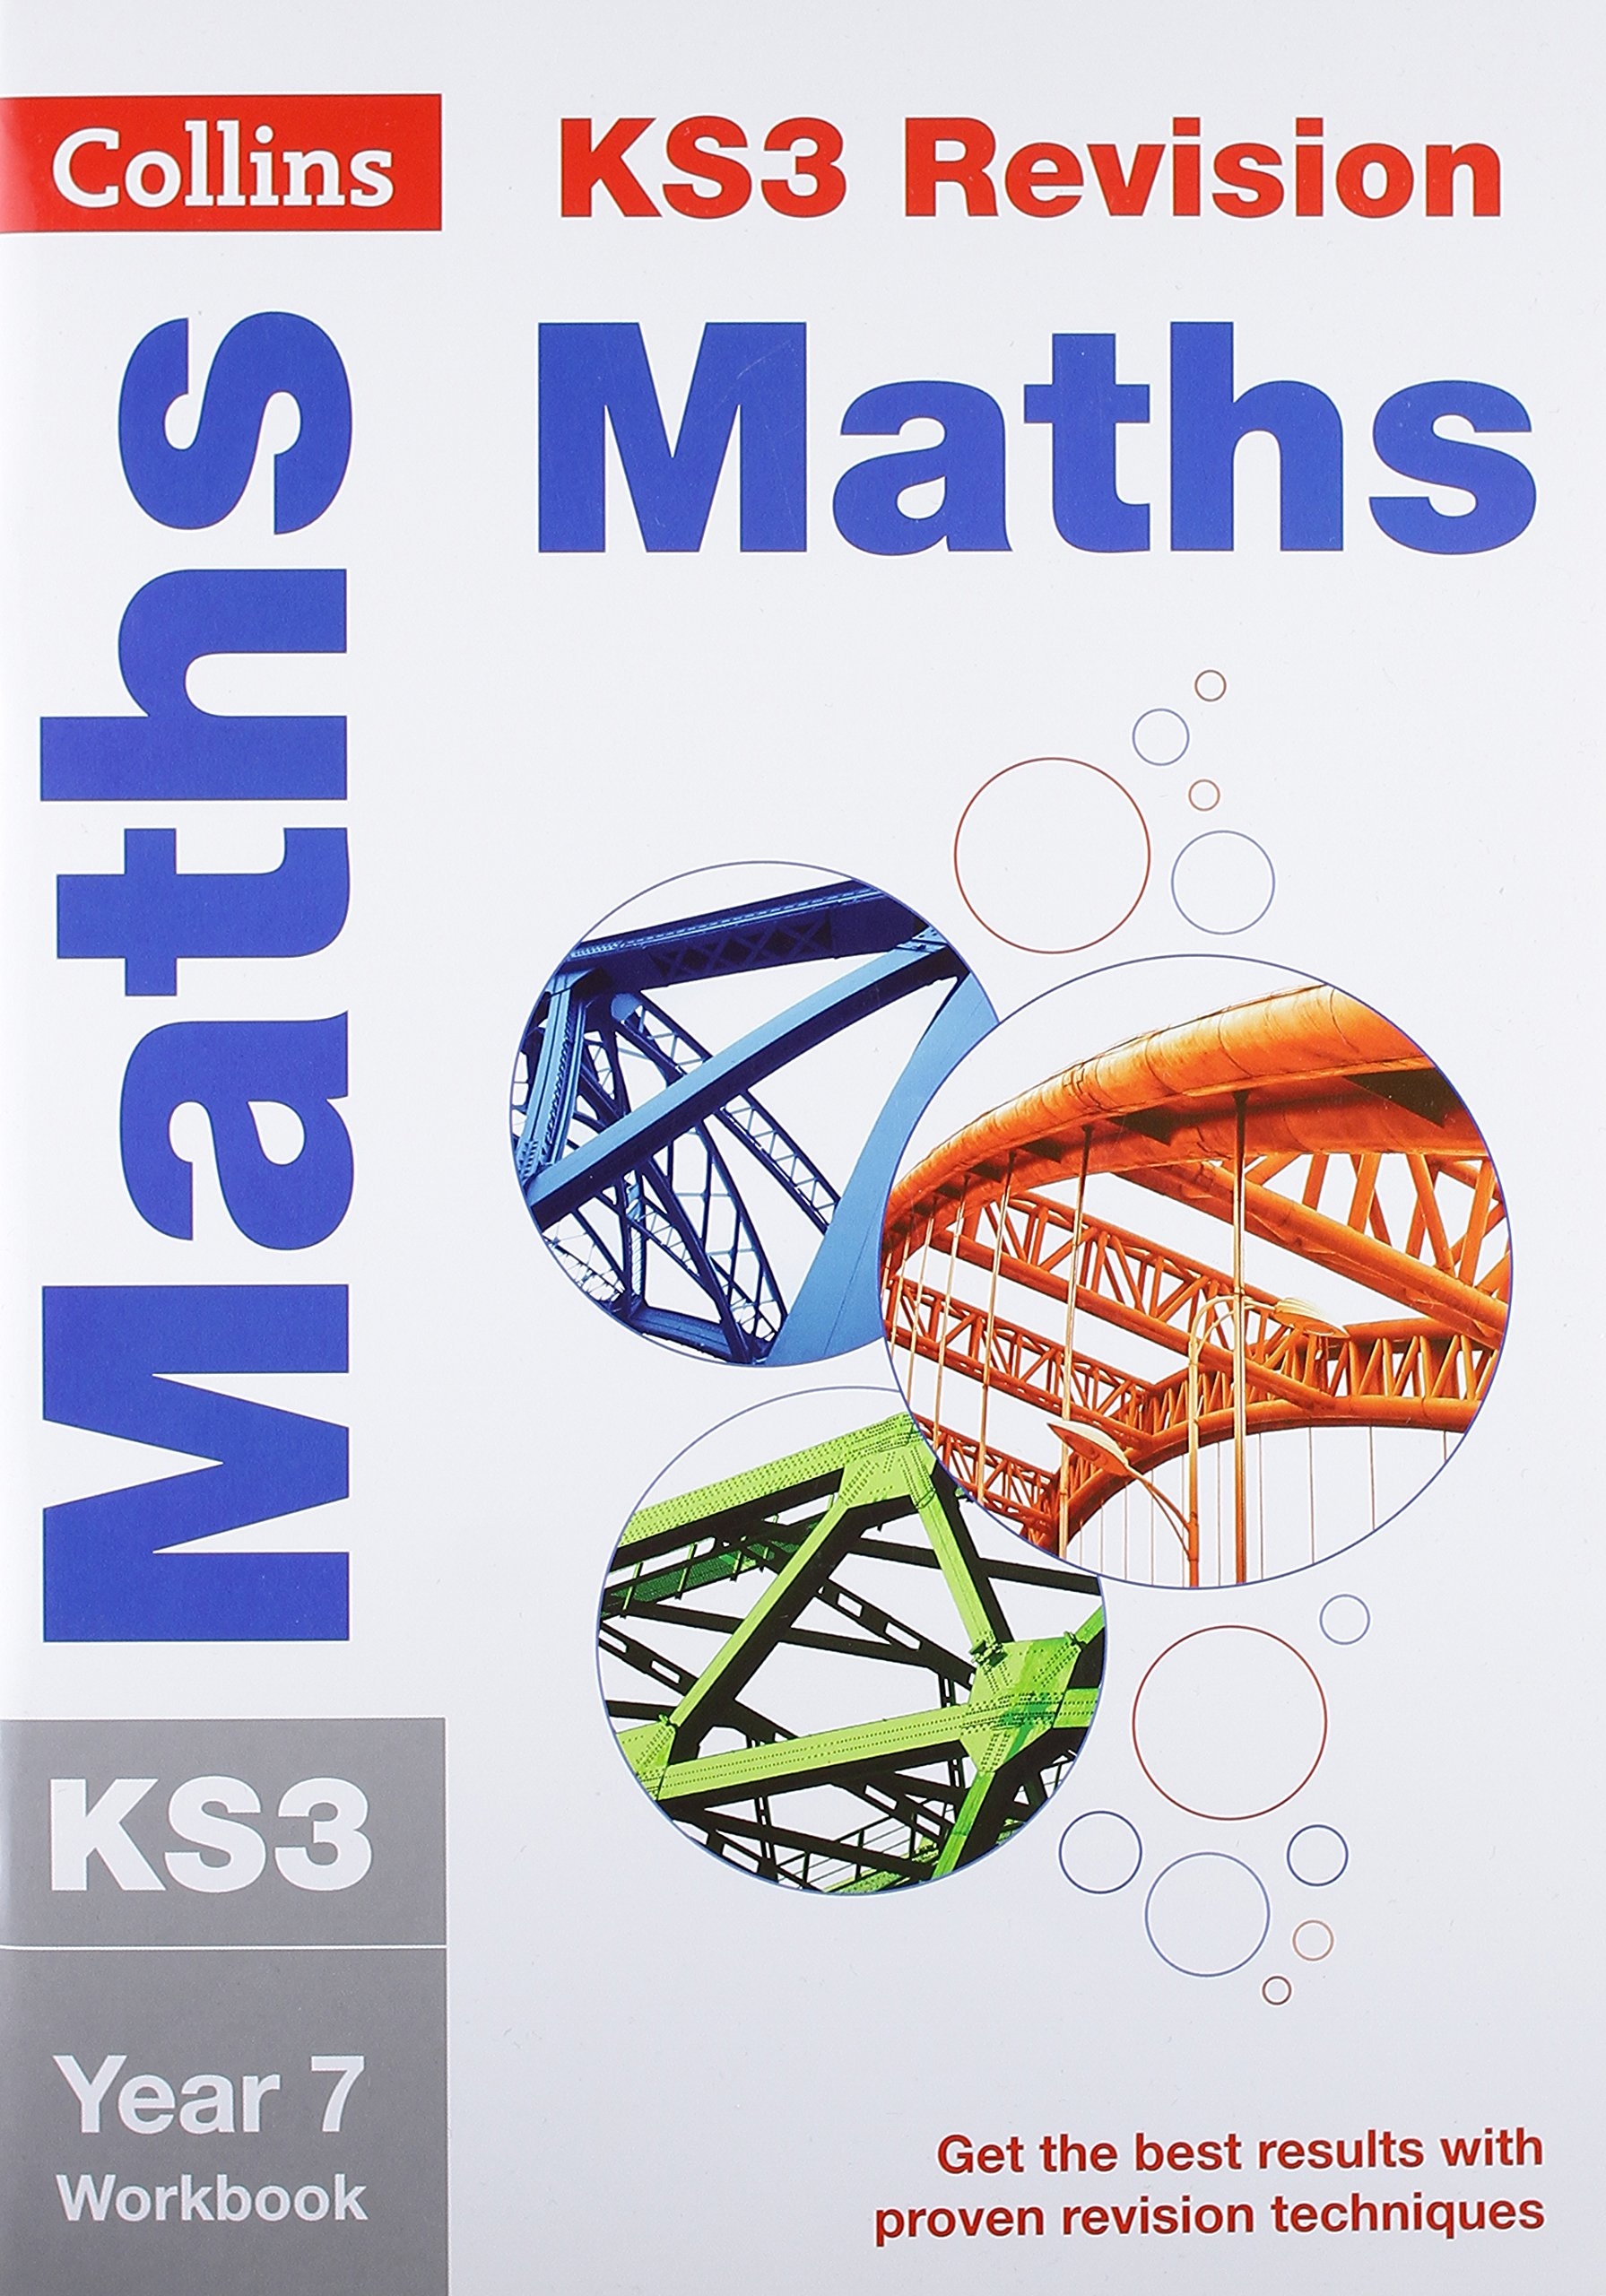 KS3 Maths Year 7 Workbook (Collins KS3 Revision): Amazon.co.uk ...